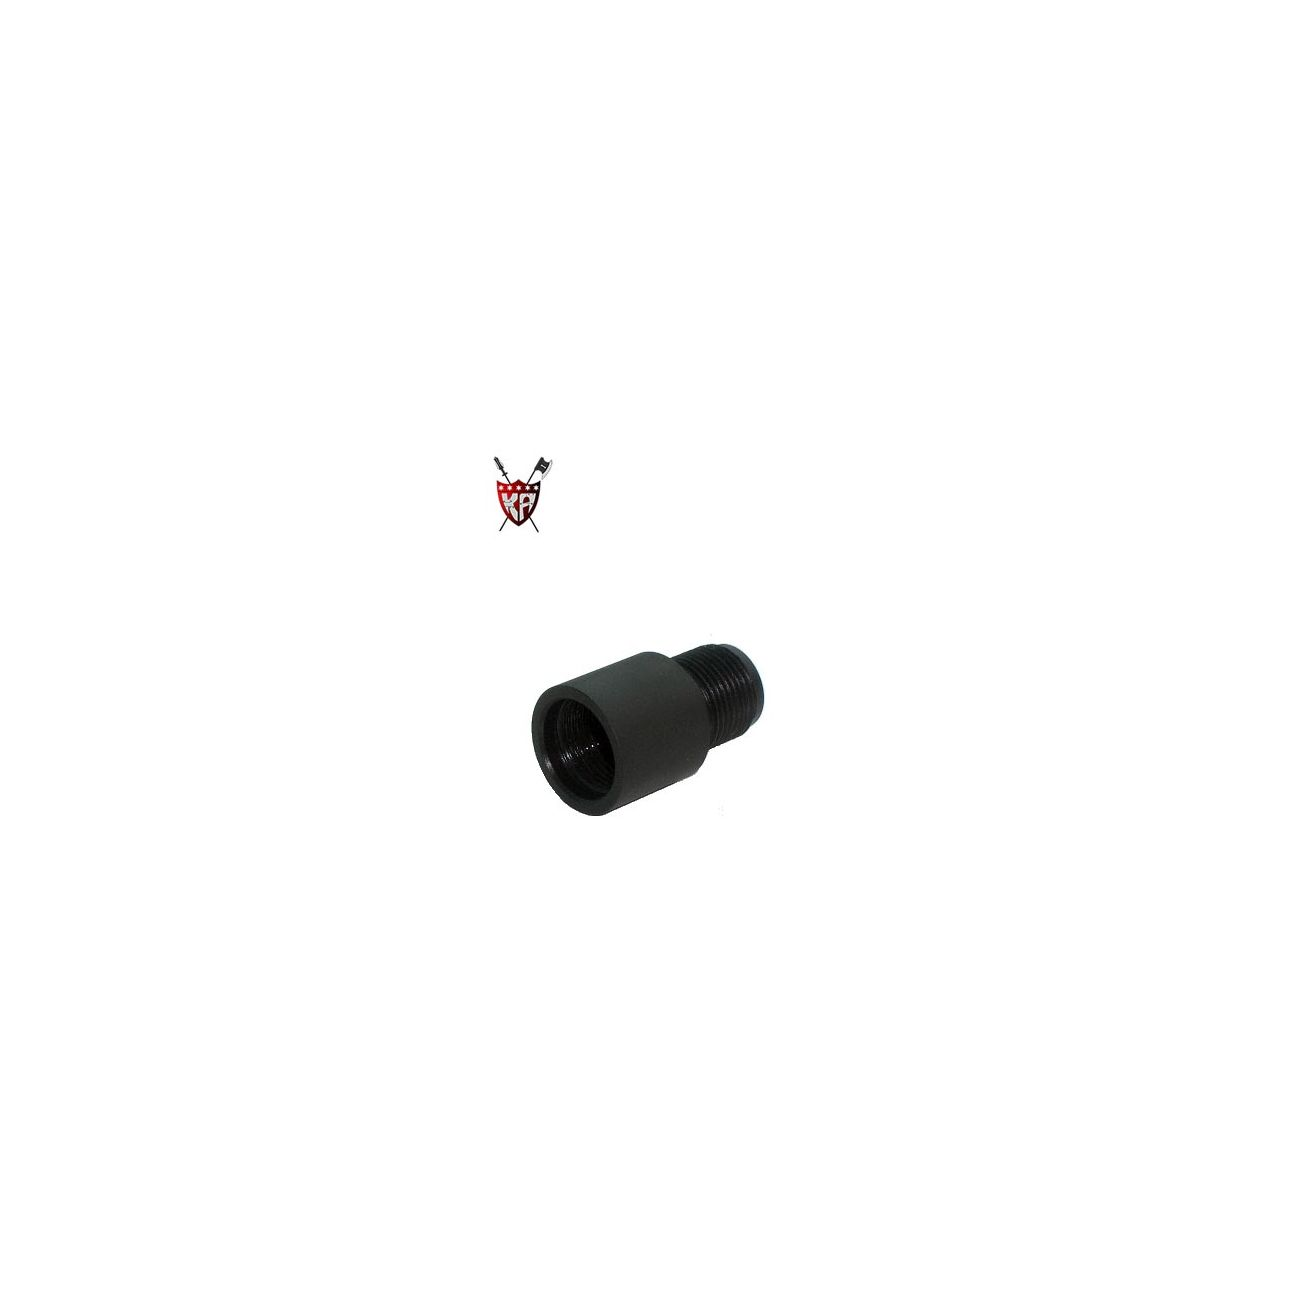 King Arms Silencer Adapter Uni 14mm+ 0